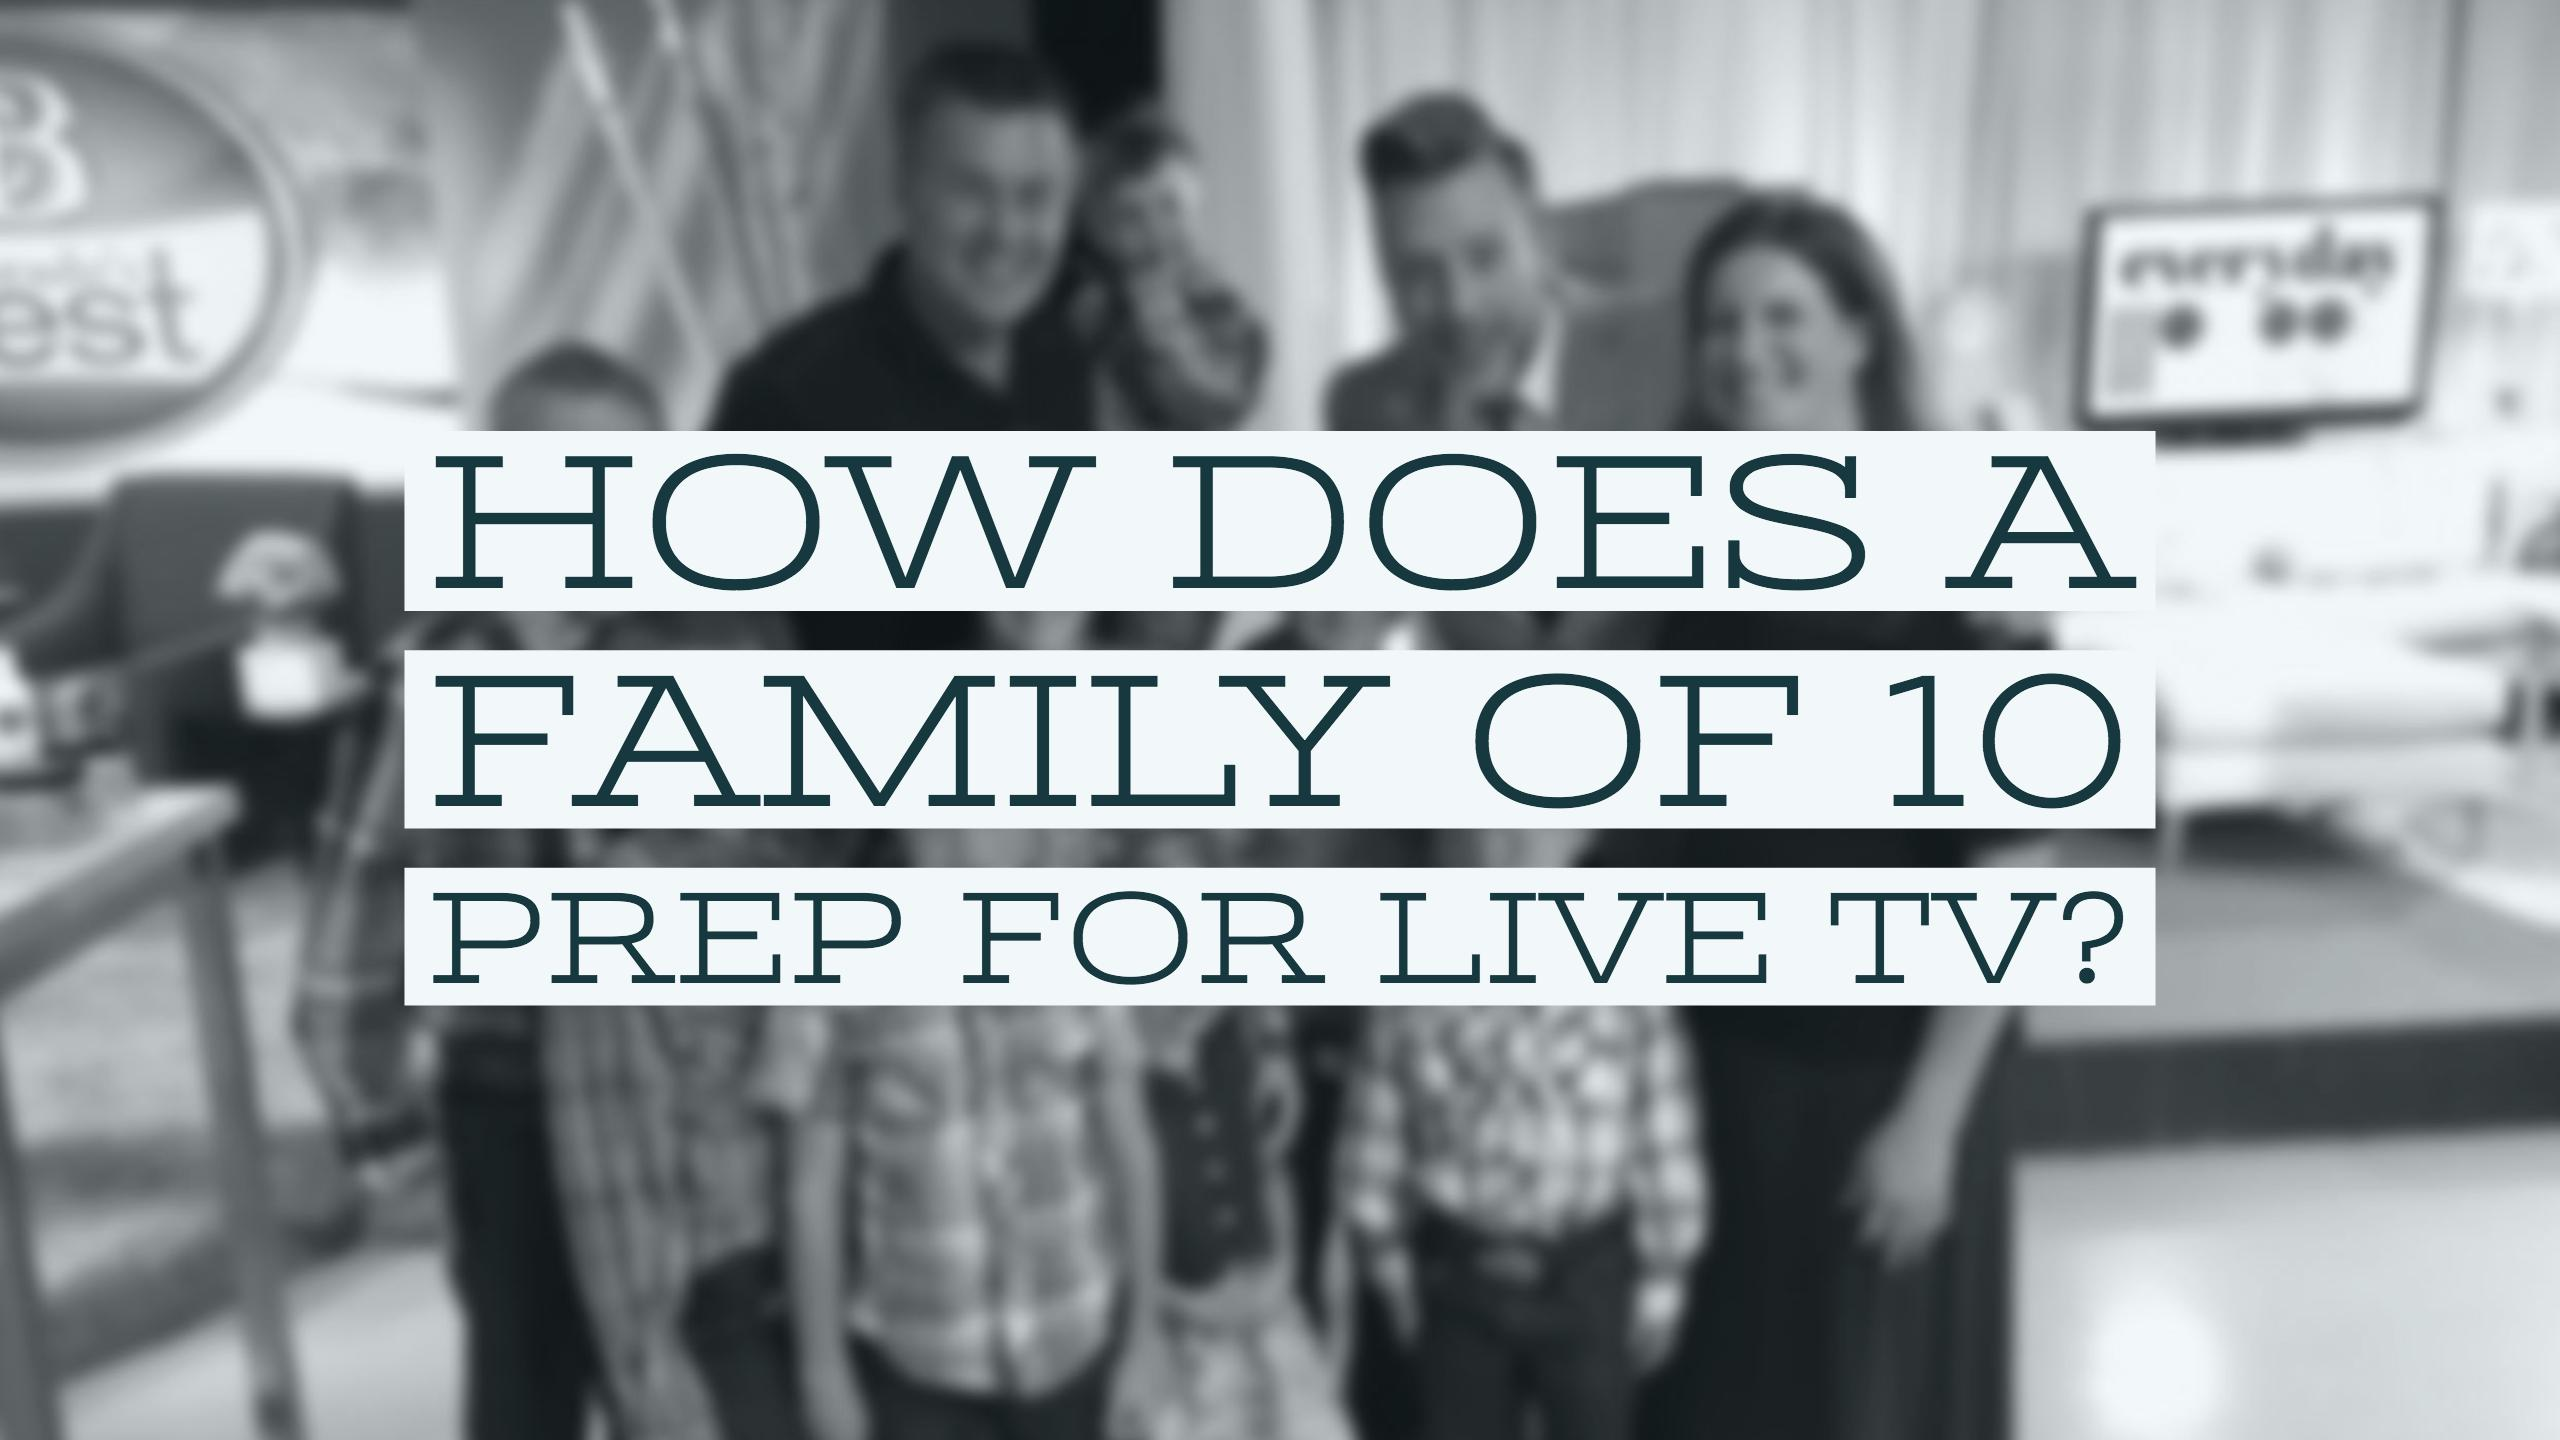 How Does a Family of 10 Prep for Live TV? (Video)